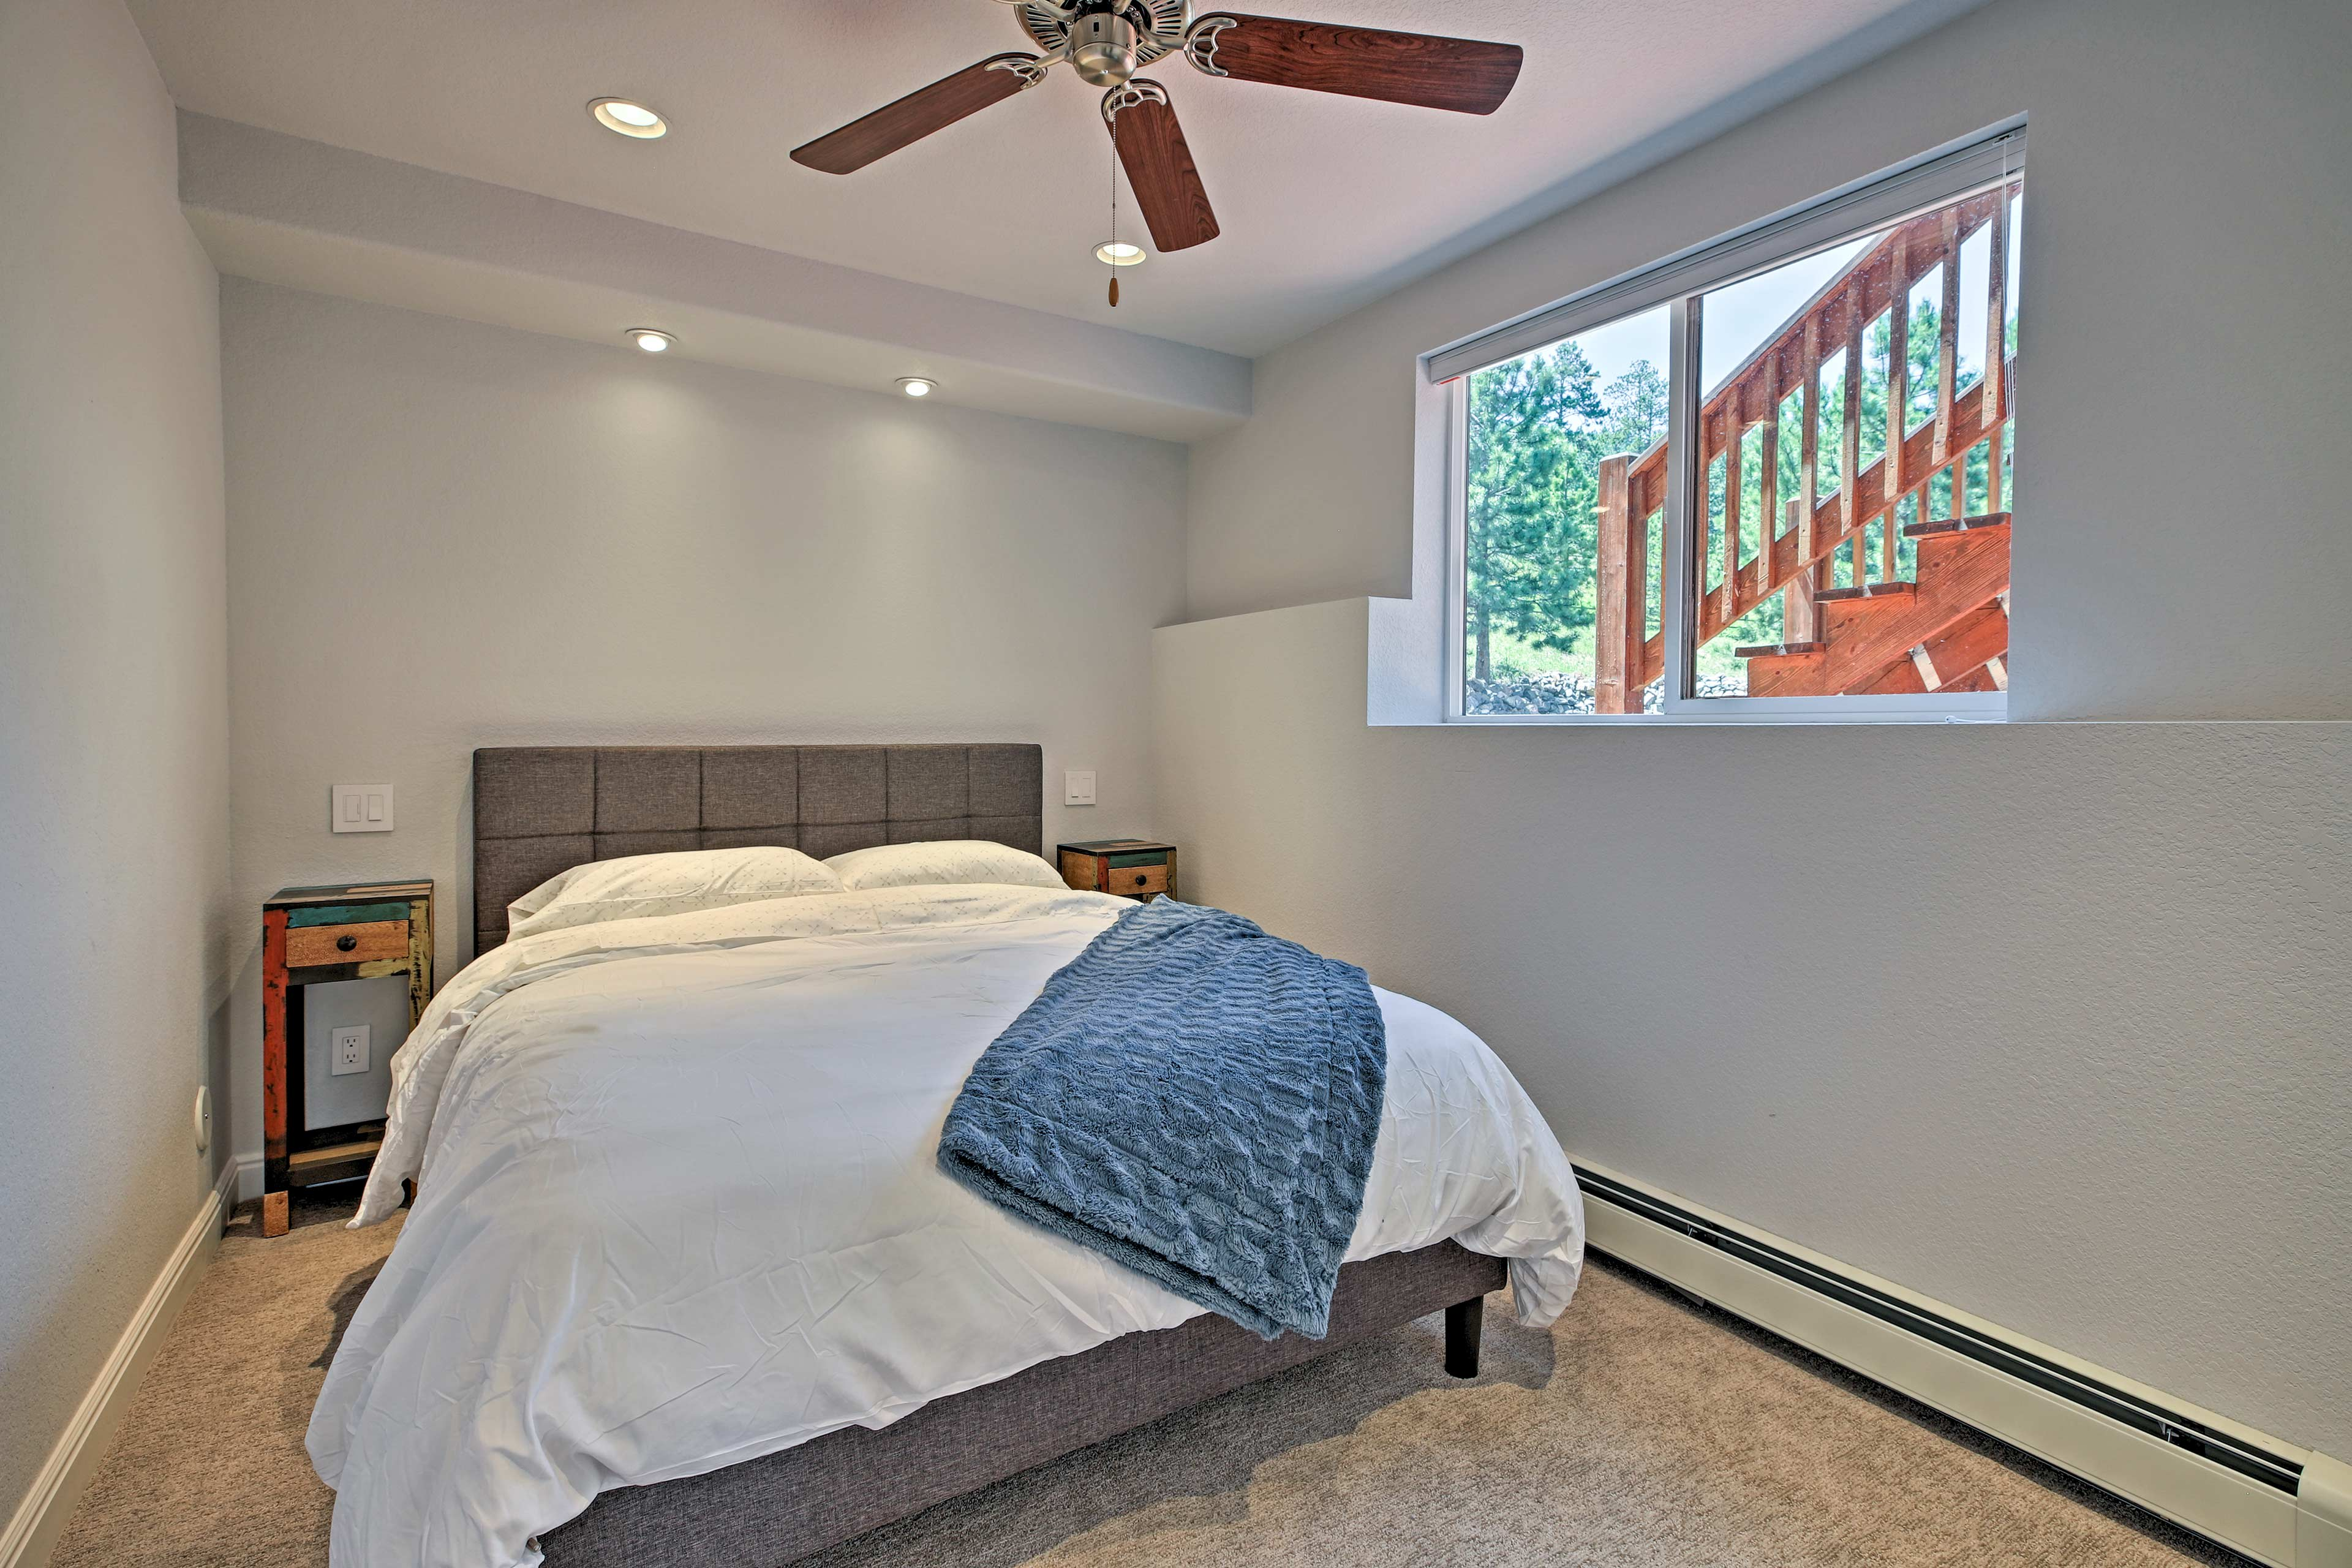 The third and final bedroom has a plush queen bed.